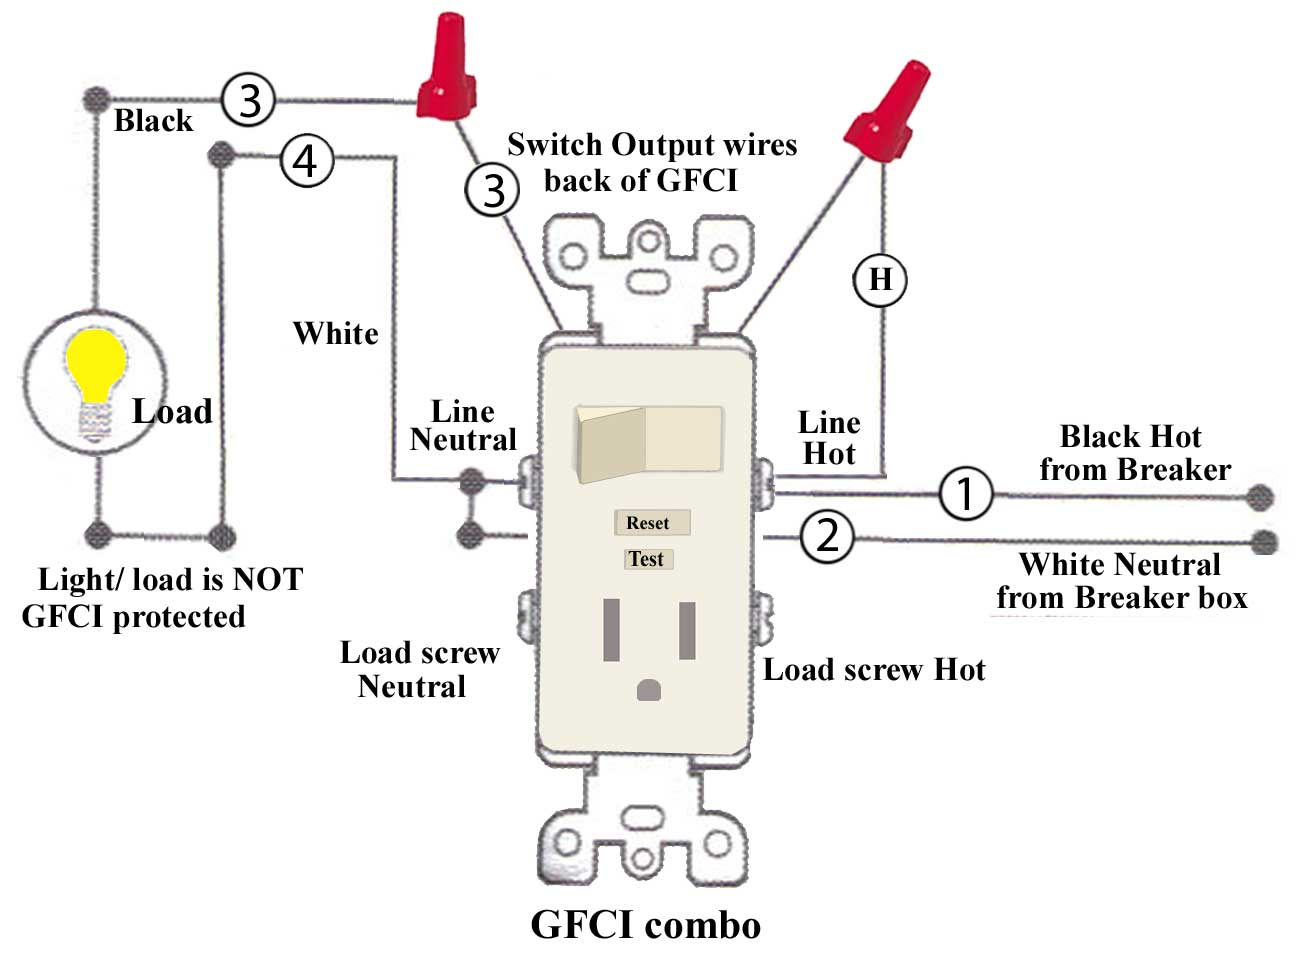 Wiring A 3 Way Plug With Gfi Schema Diagram Online Light Switch Schematic For Gfci Hub An Outlet 2 Schematics